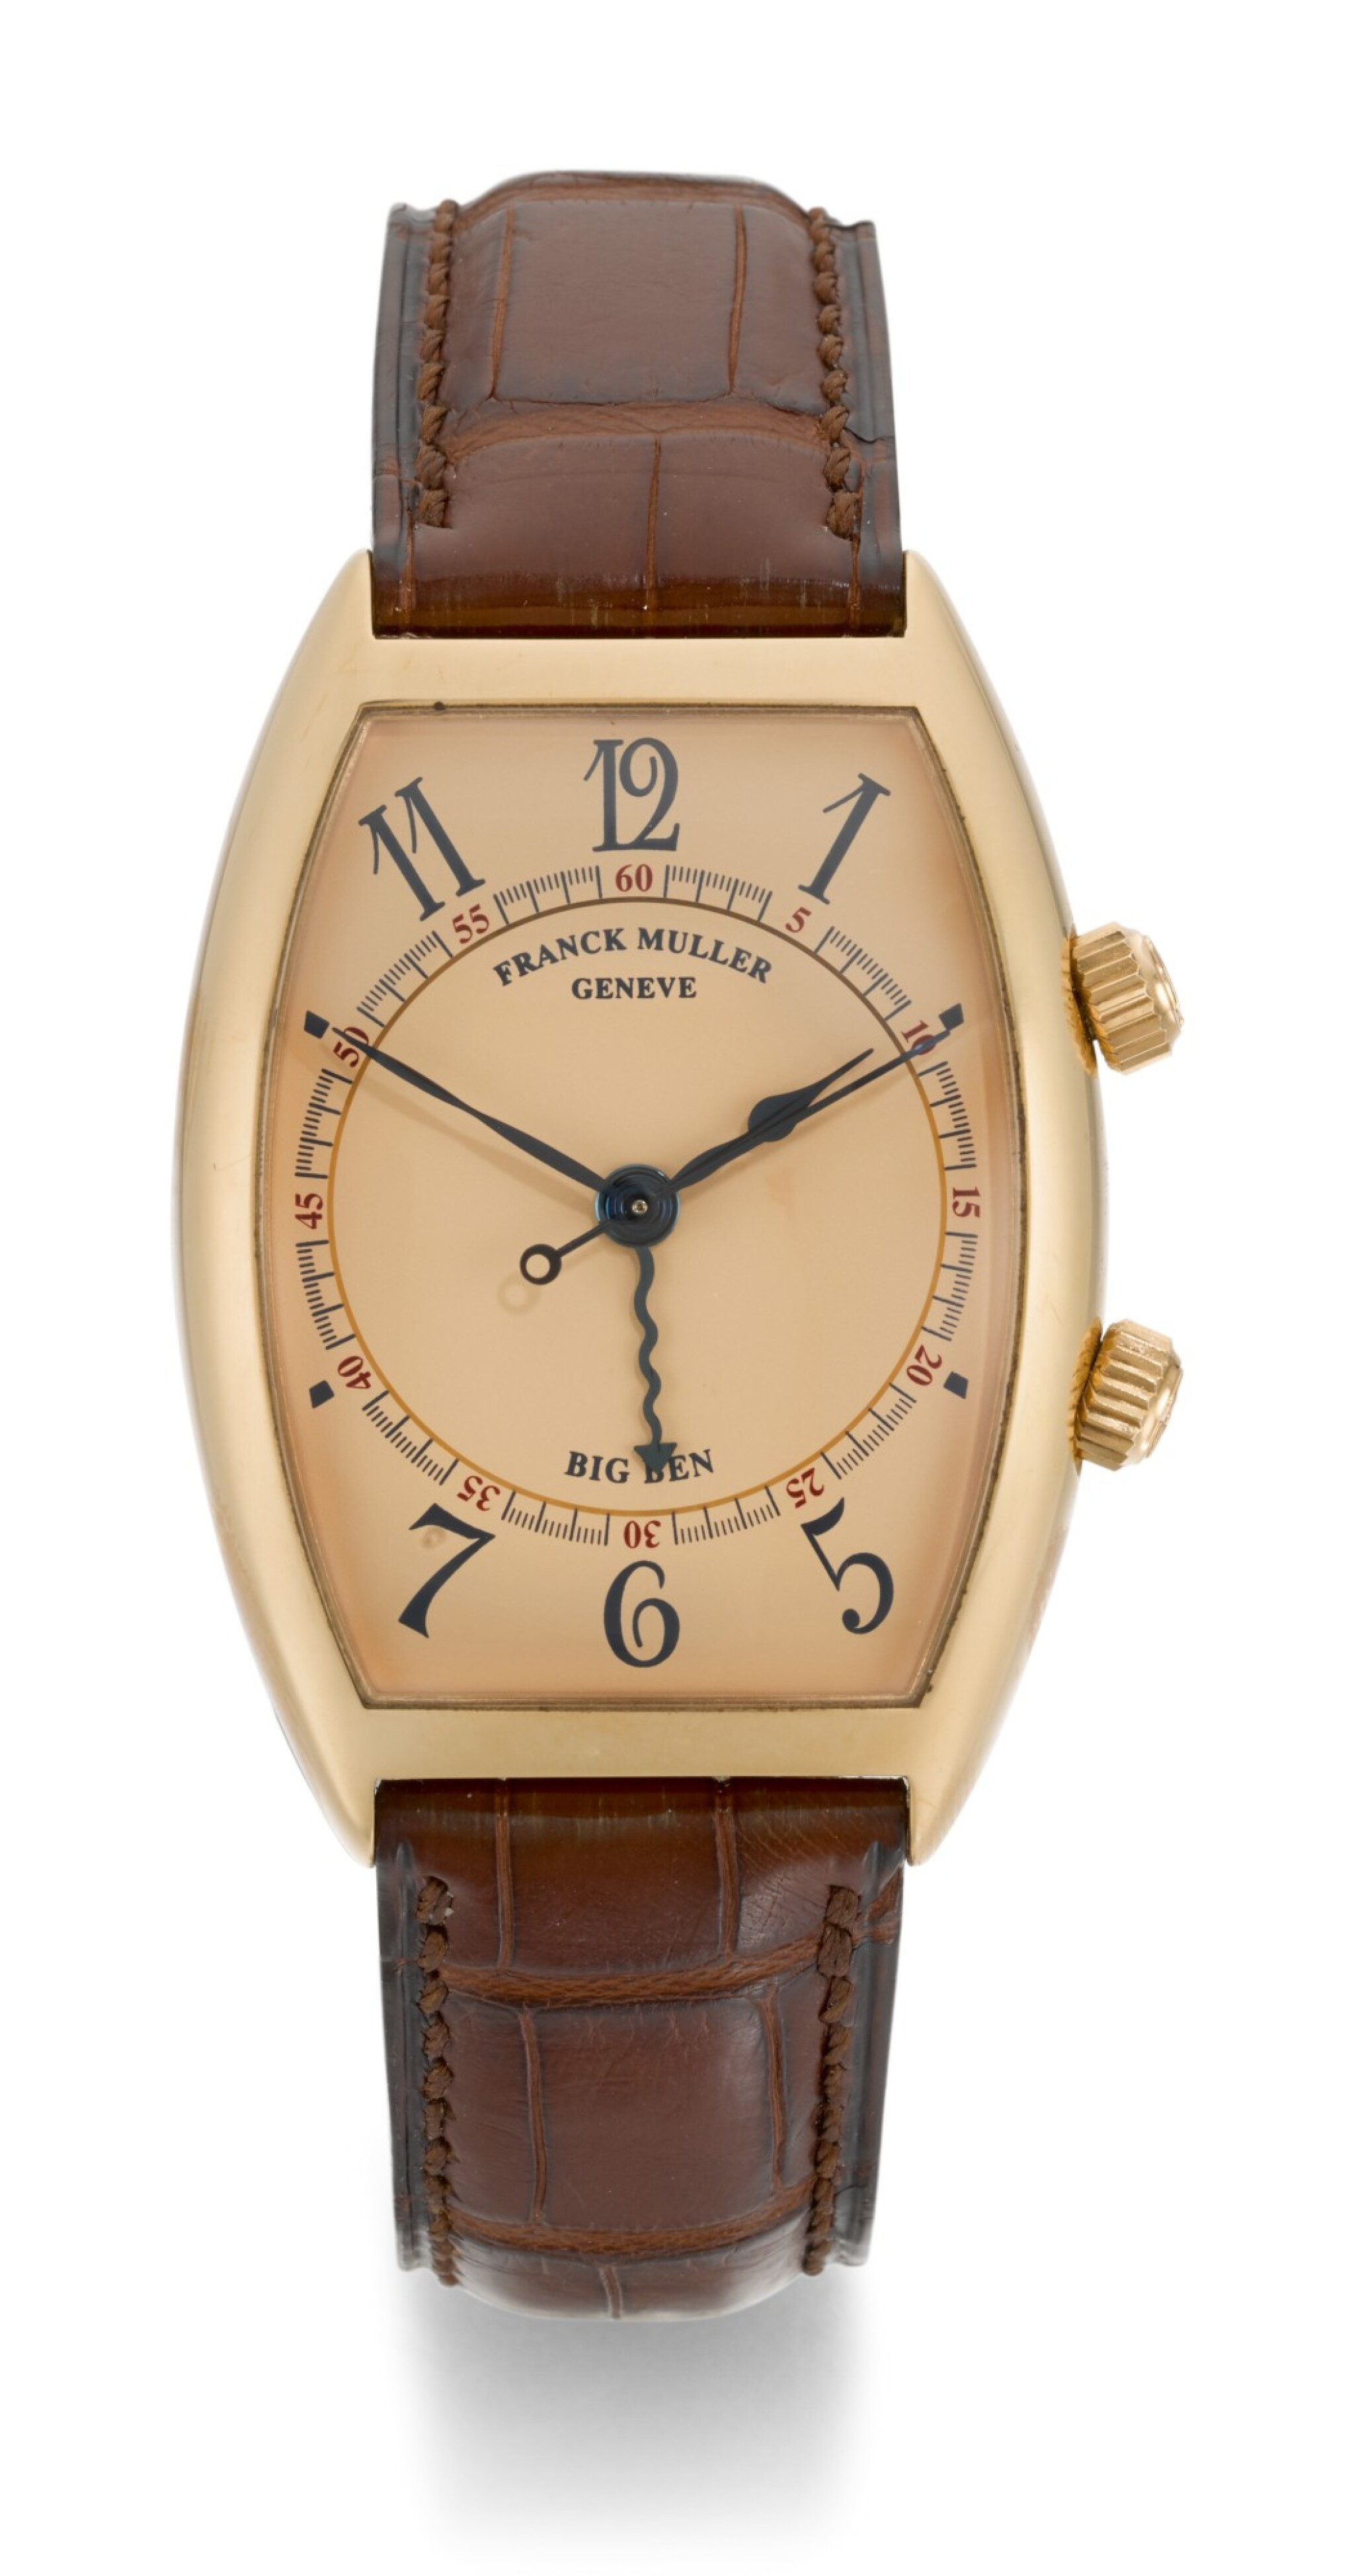 FRANCK MULLER | CURVEX BIG BEN, REFERENCE 5850 AL, PINK GOLD TONNEAU-SHAPED ALARM WRISTWATCH, CIRCA 2000